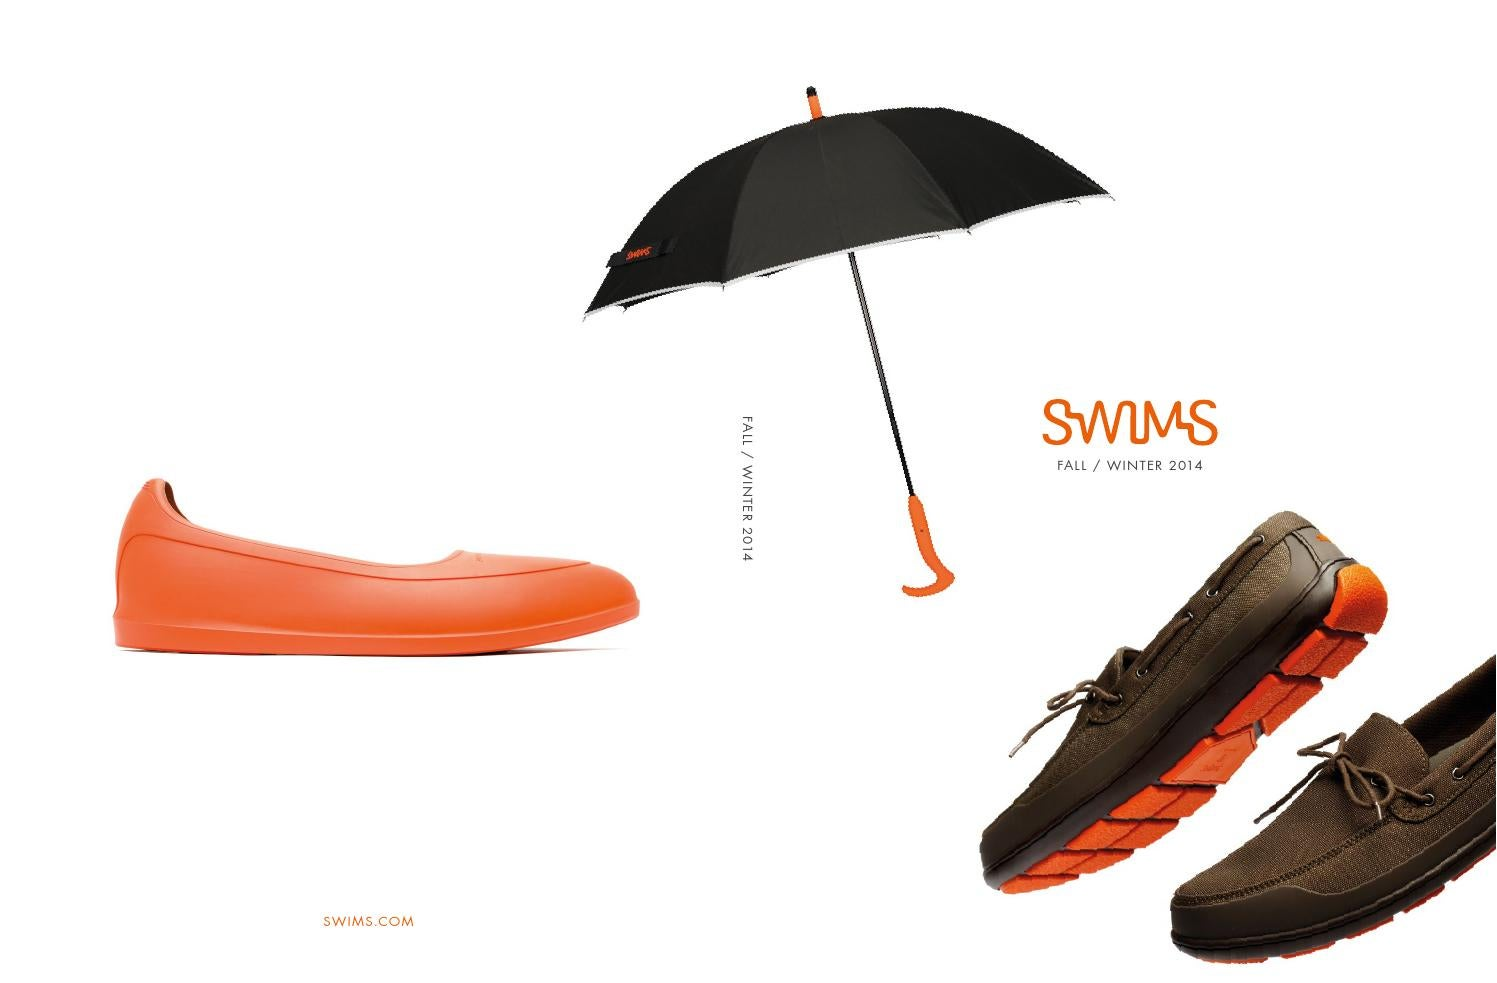 Swims Fall/Winter 2014 by Via Scandinavia